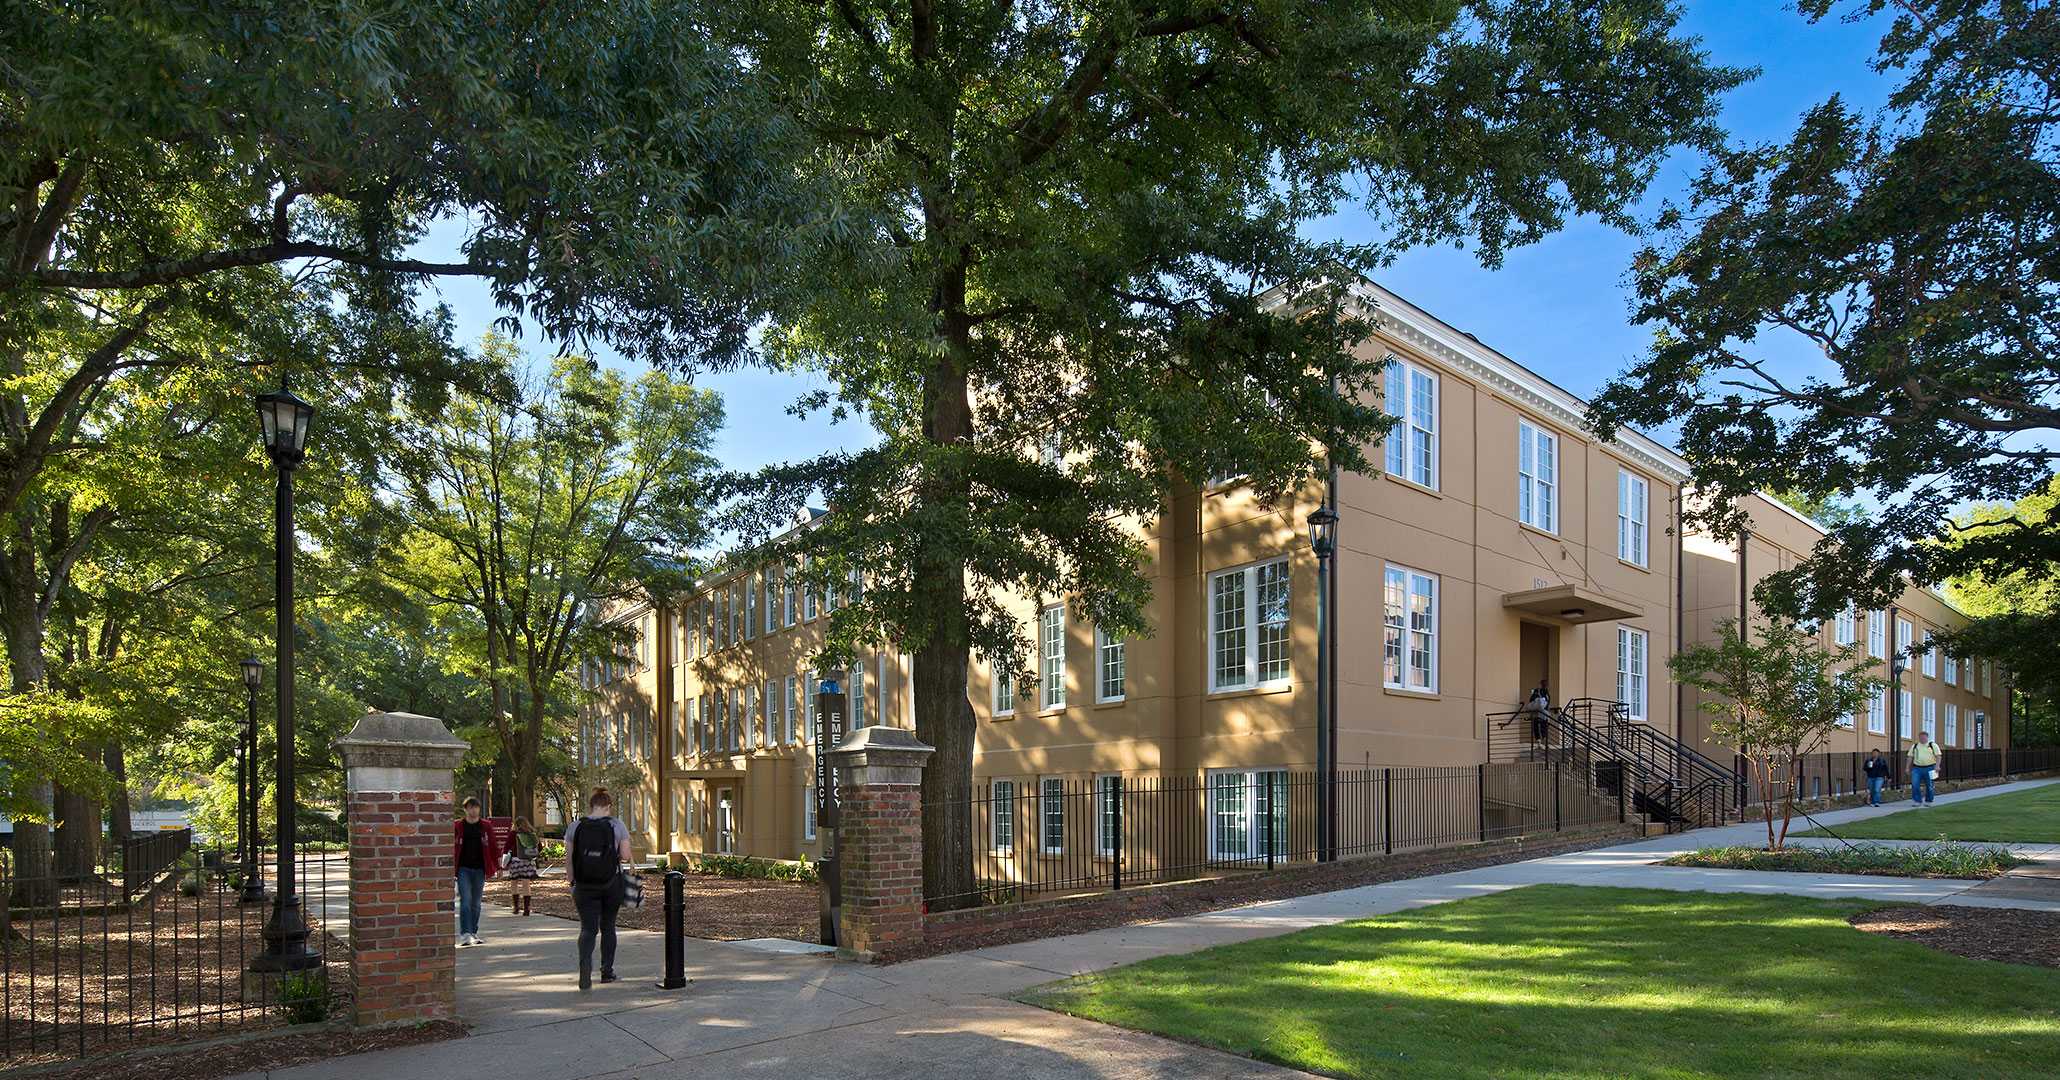 University of South Carolina worked with Boudreaux architects to rehabilitate historic campus building Hamilton College.